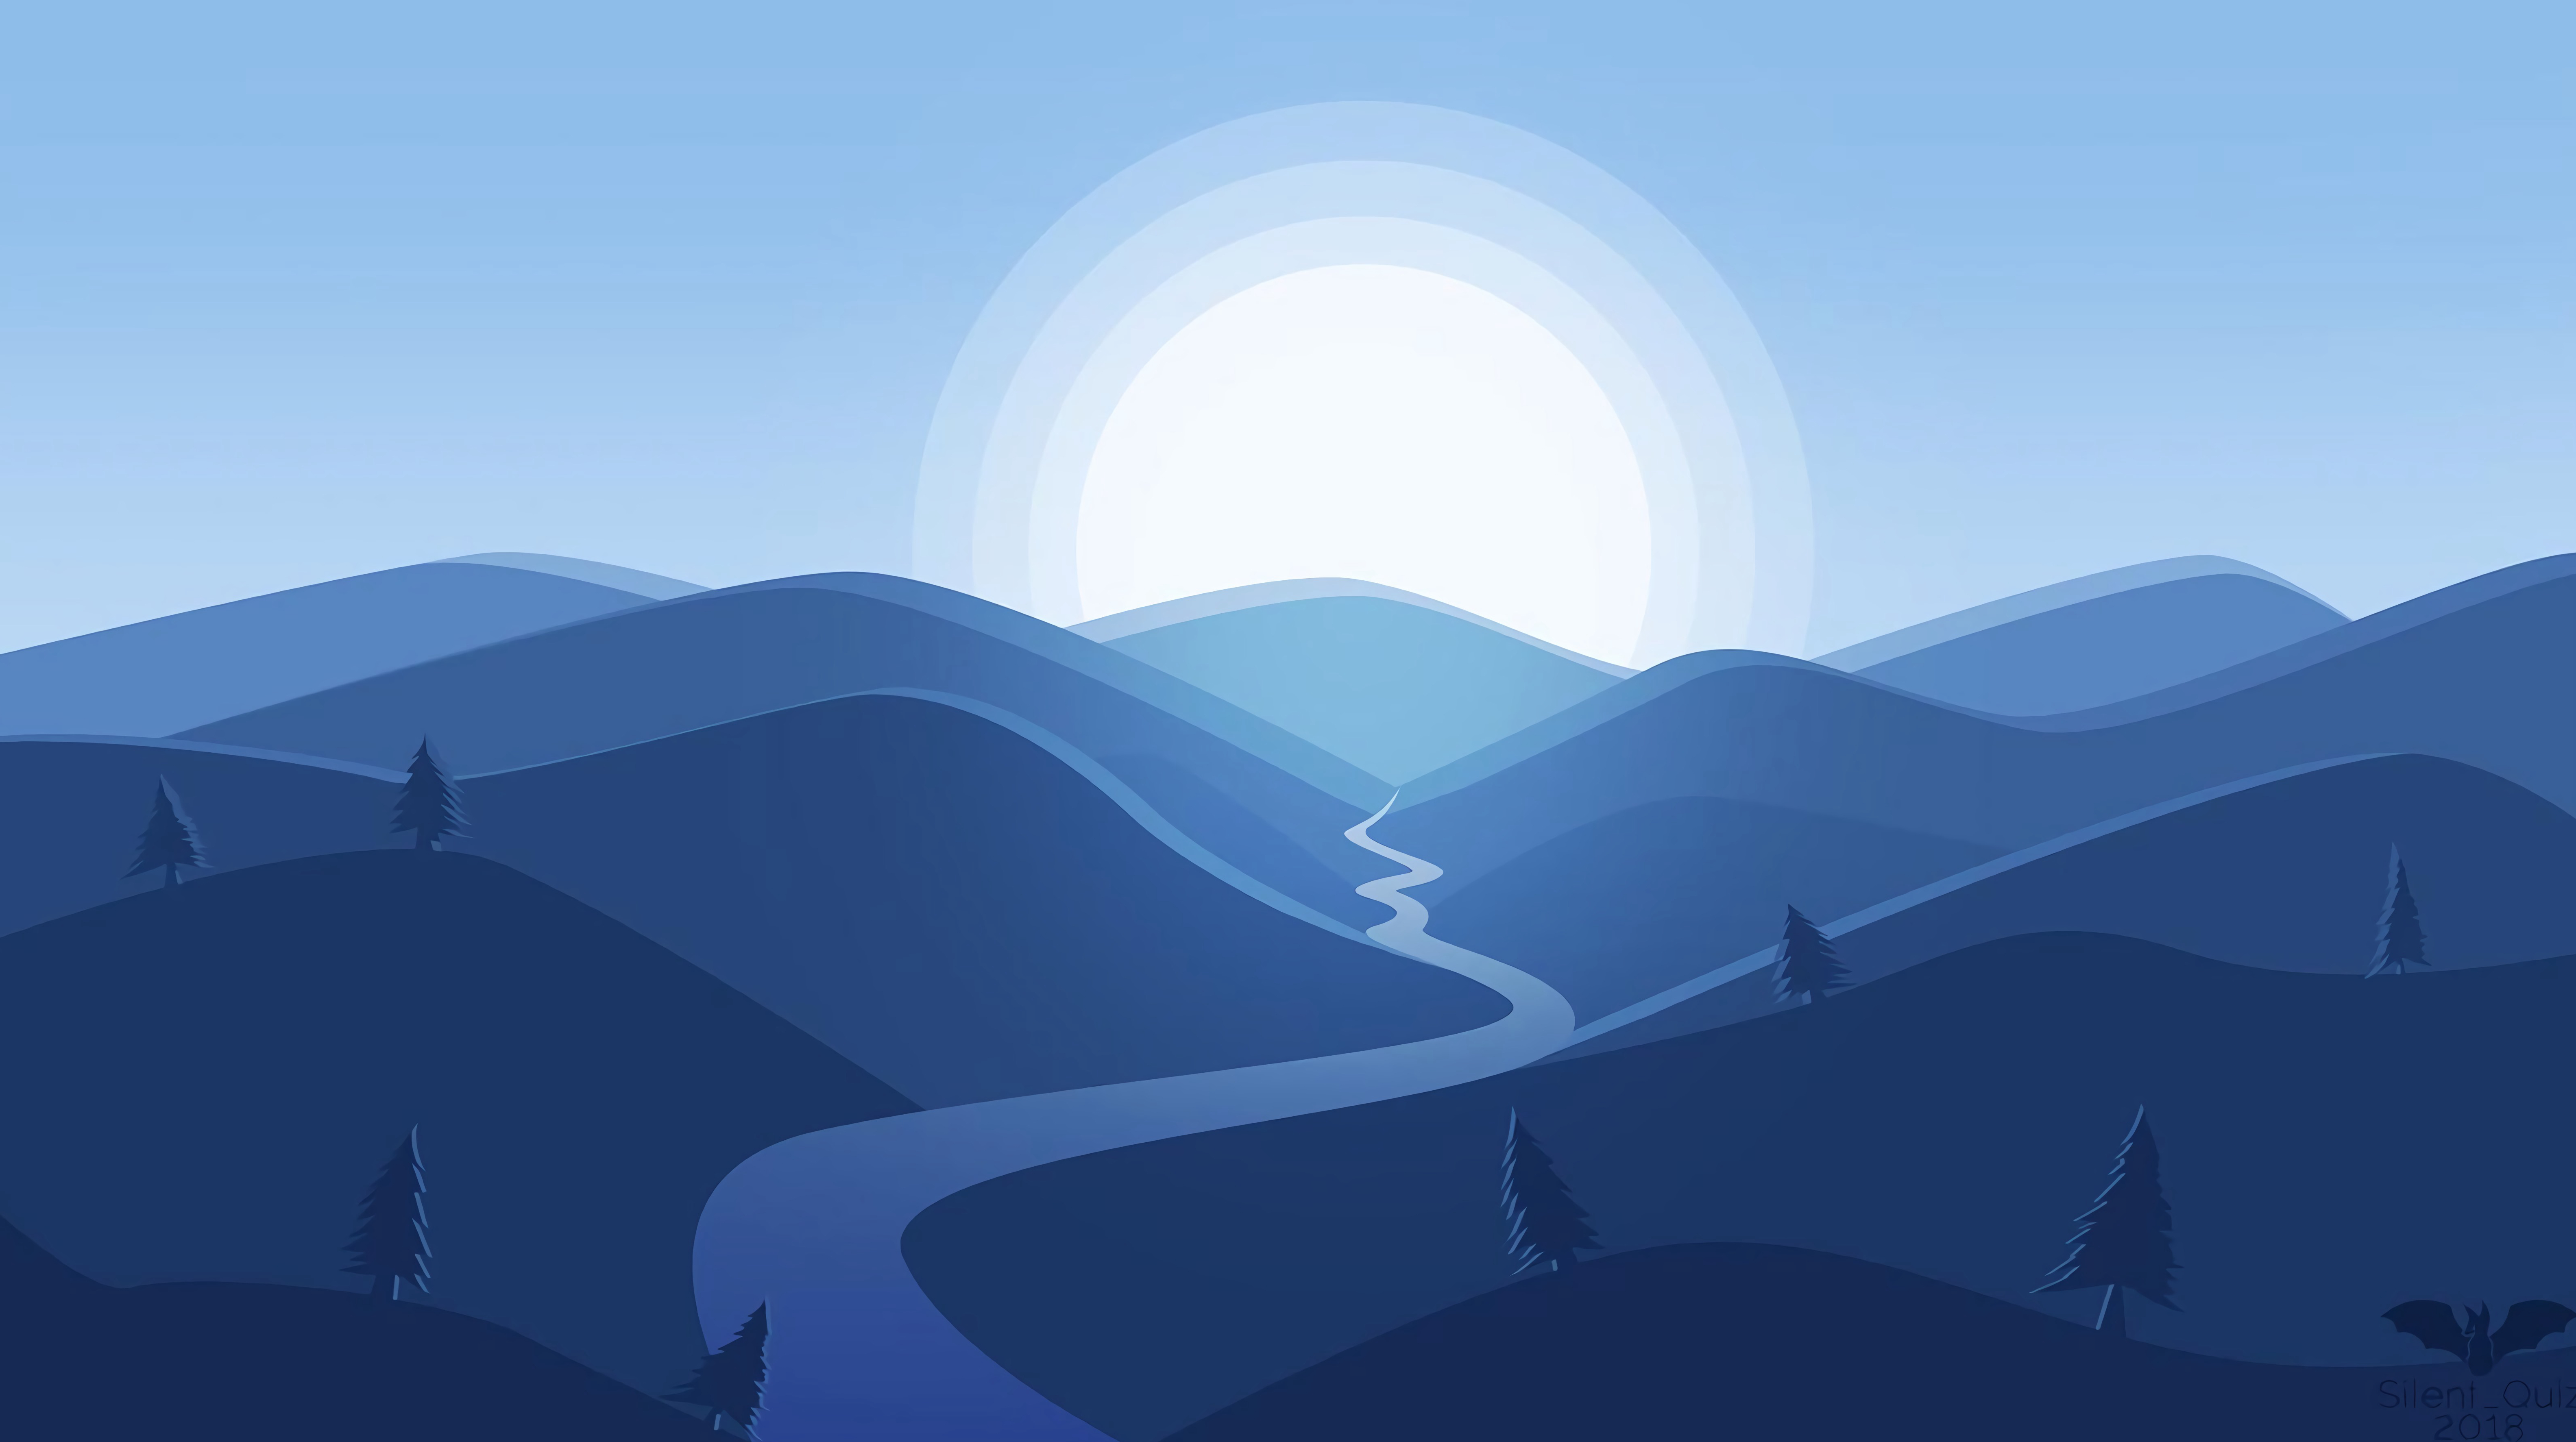 76254 download wallpaper Landscape, Rivers, Art, Mountains, Sun, Vector screensavers and pictures for free